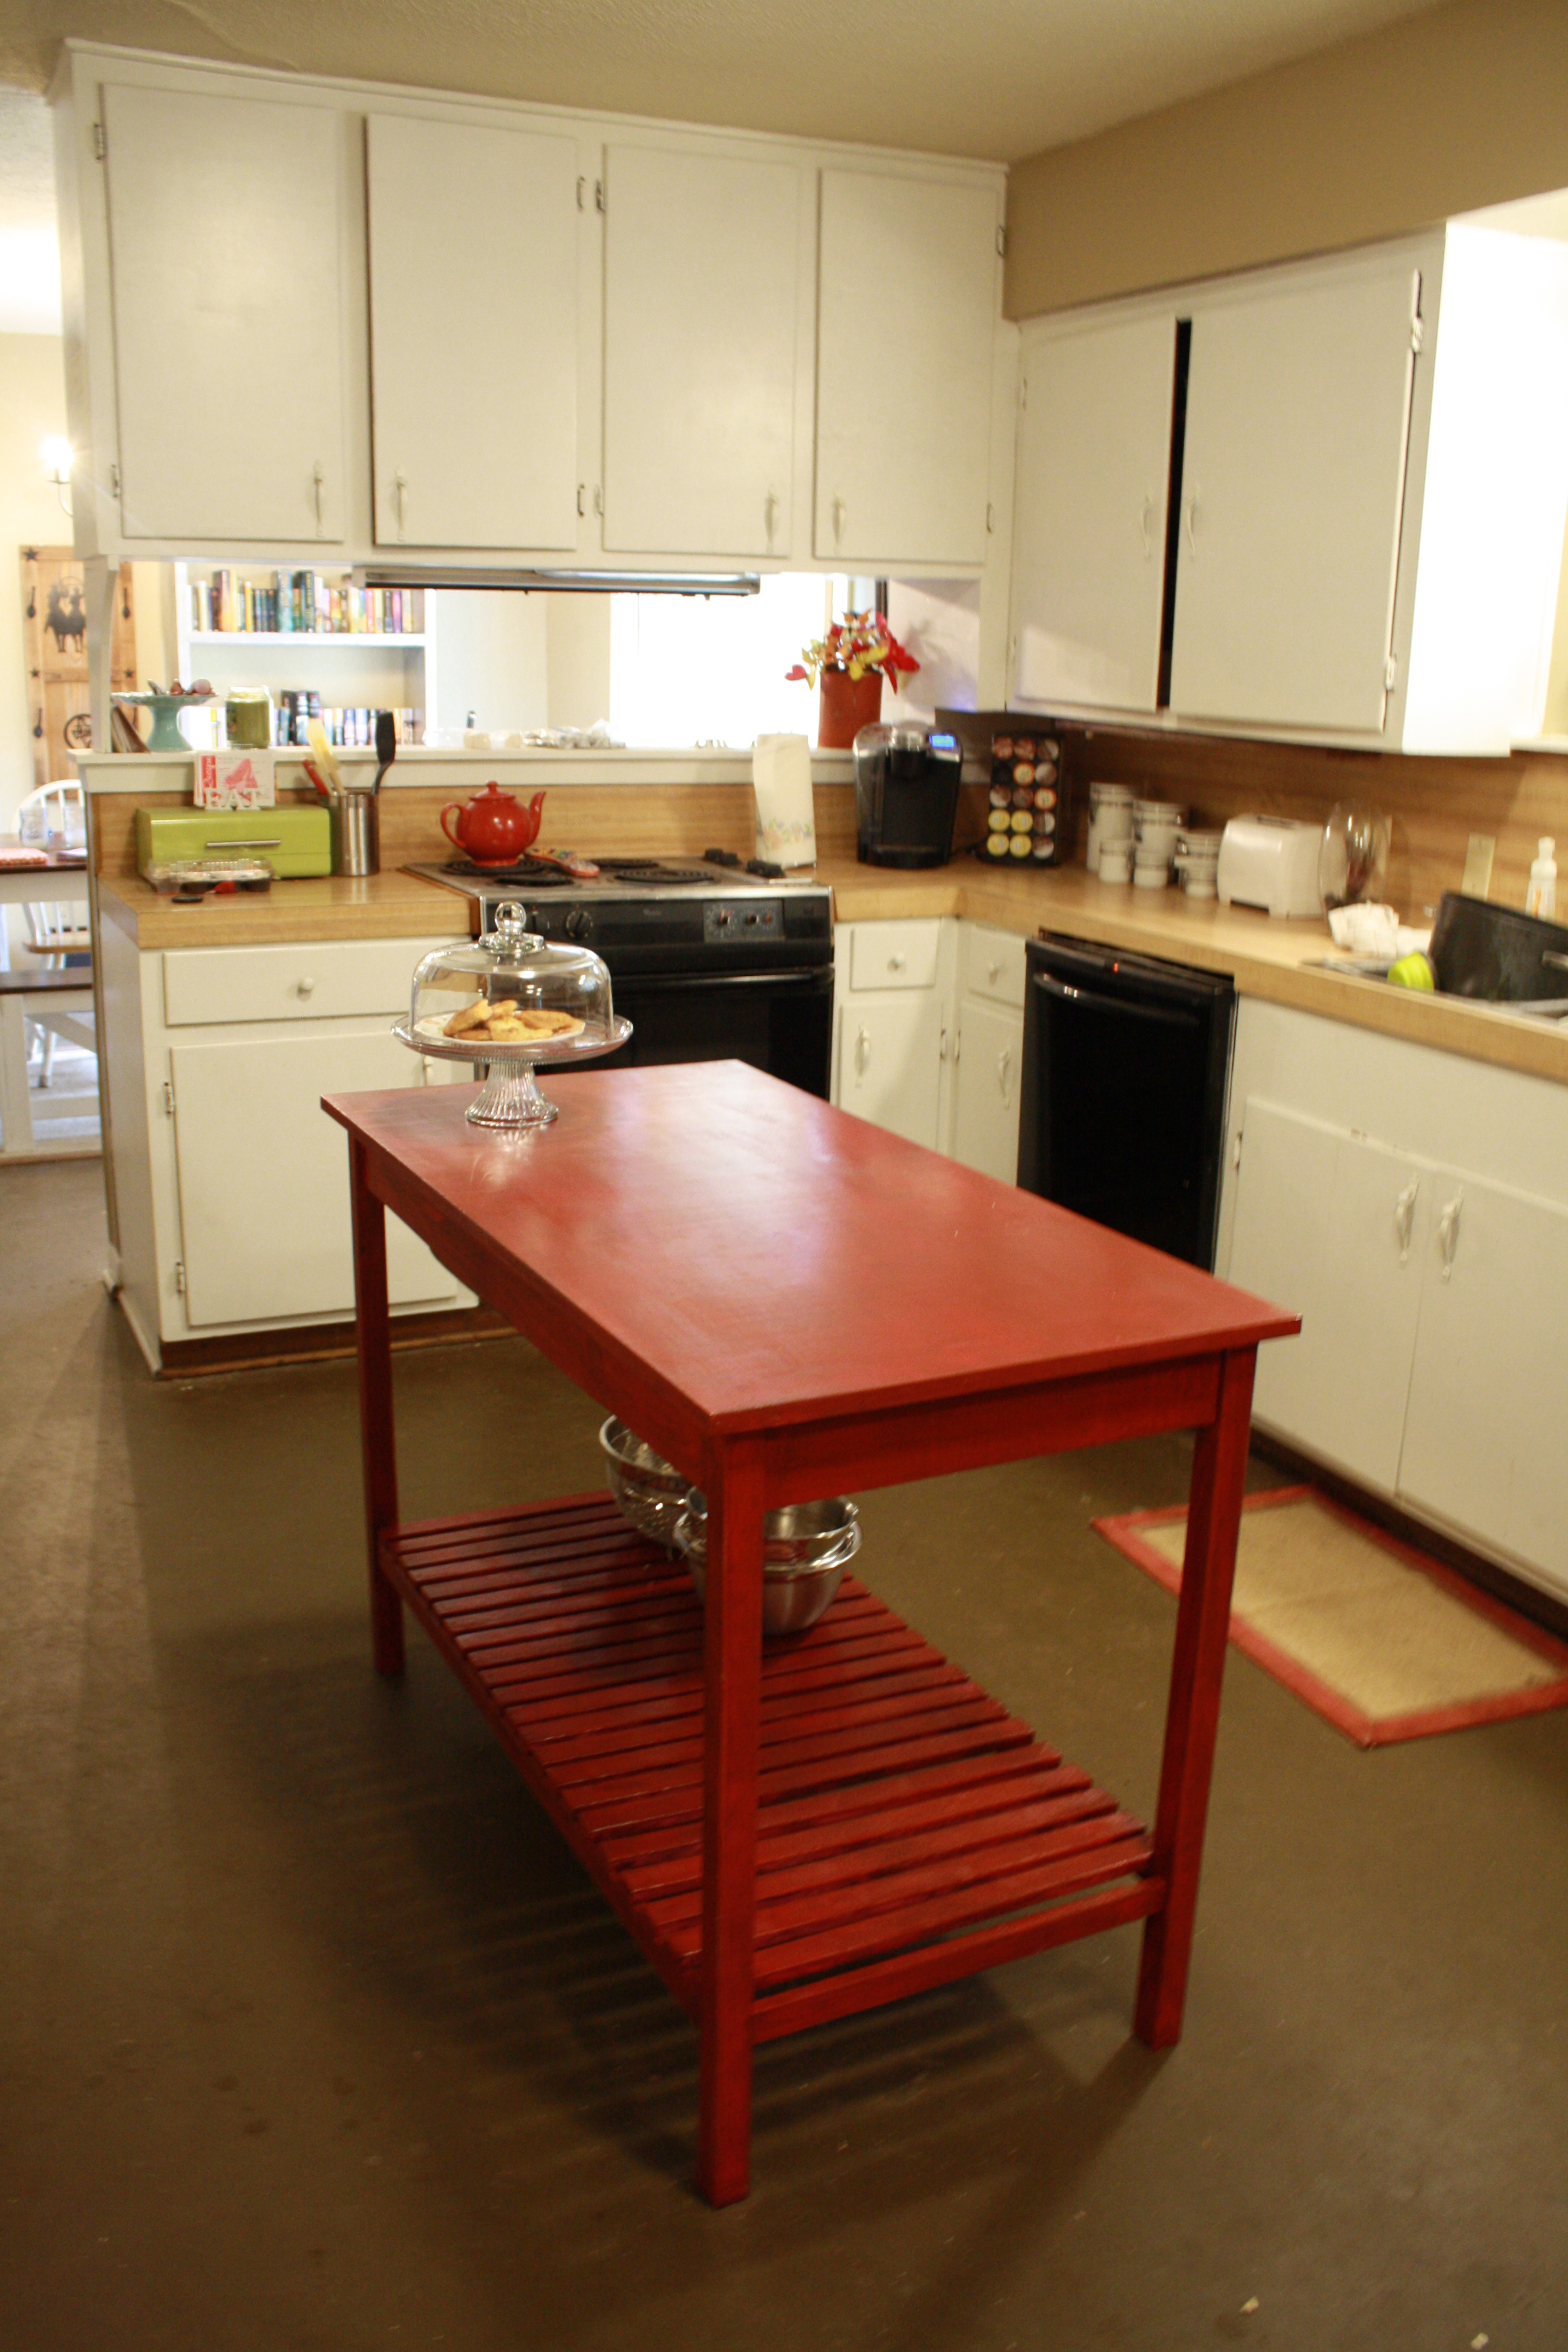 diy kitchen islands building a kitchen cabinet Red slatted bottom DIY kitchen island